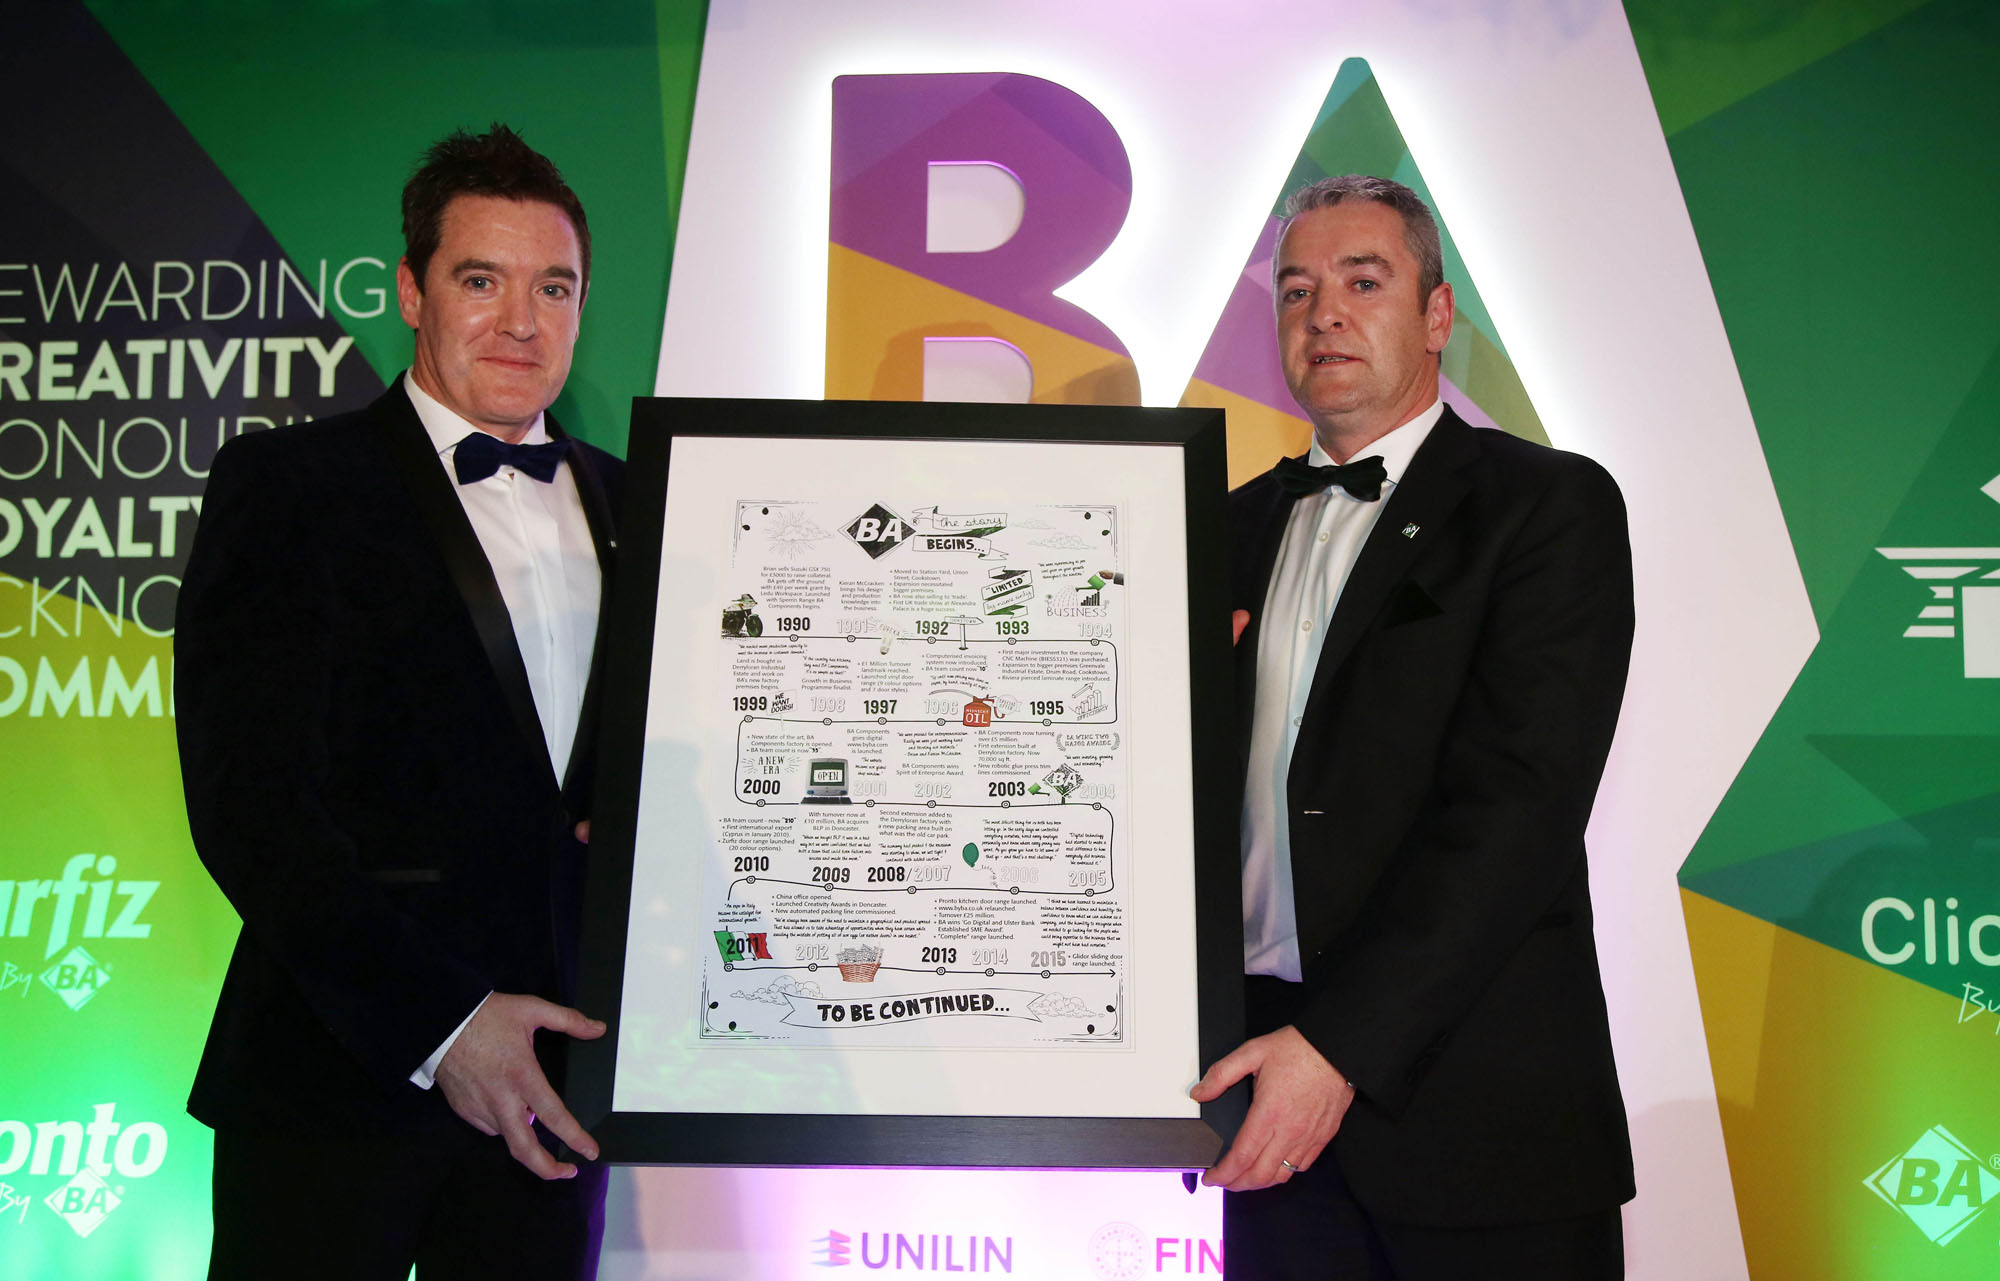 The #BAwards2015 Review